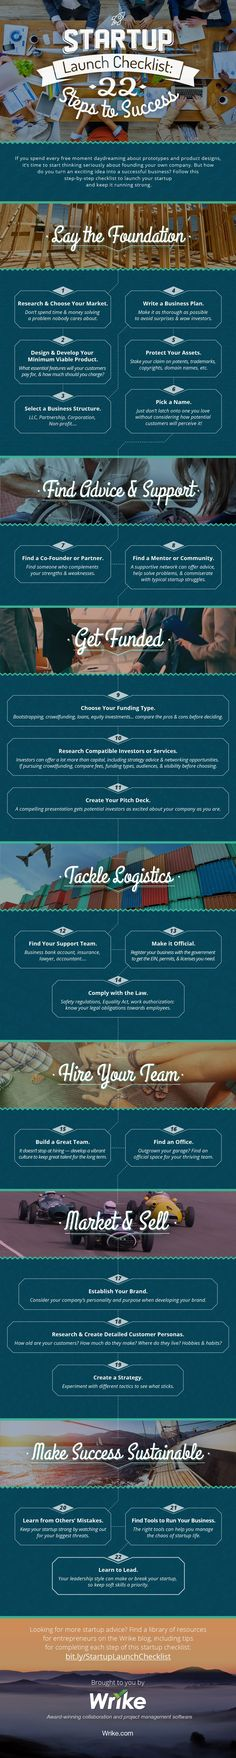 Startup Launch Checklist: 22 Steps to Success #infographic #Startup #Business